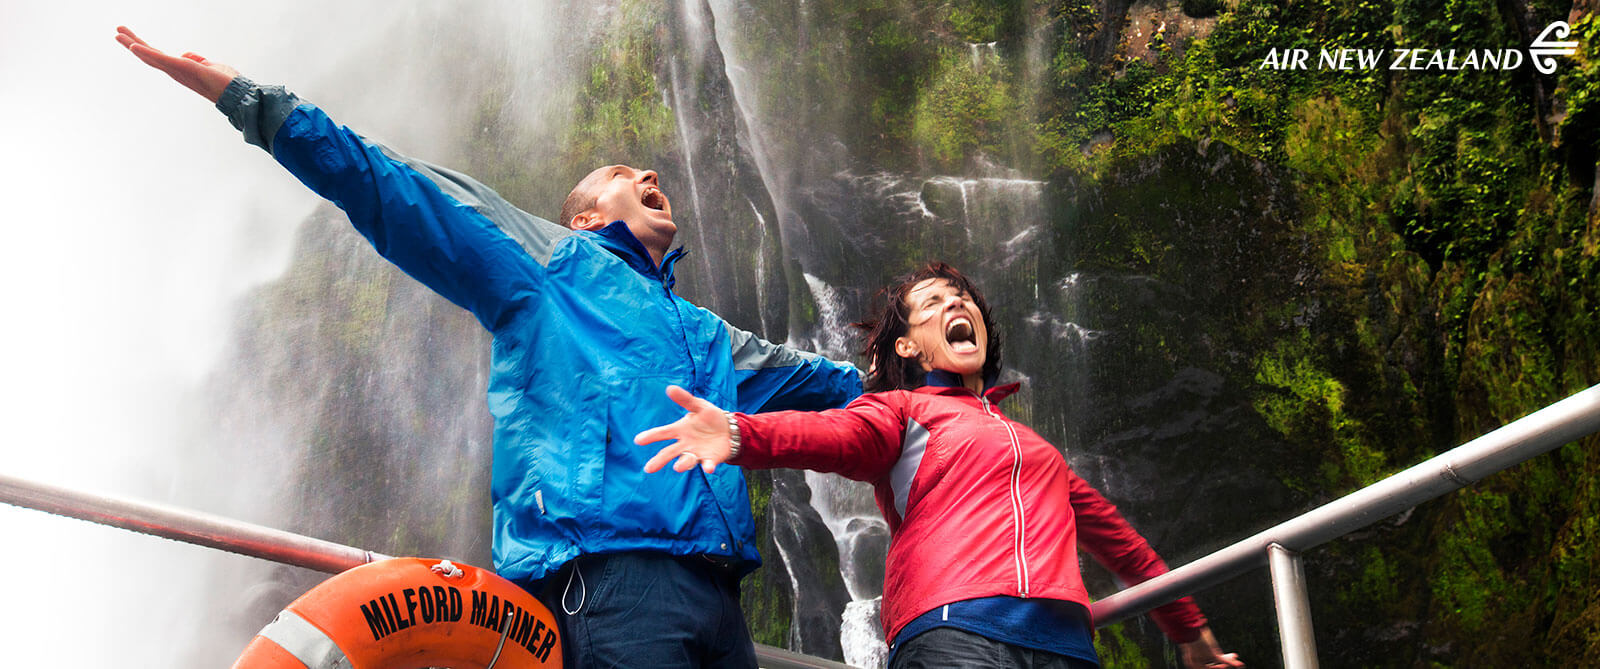 Milford Sound Waterfalls - New Zealand Highlights: Scenery, Adventure, and Wine Package